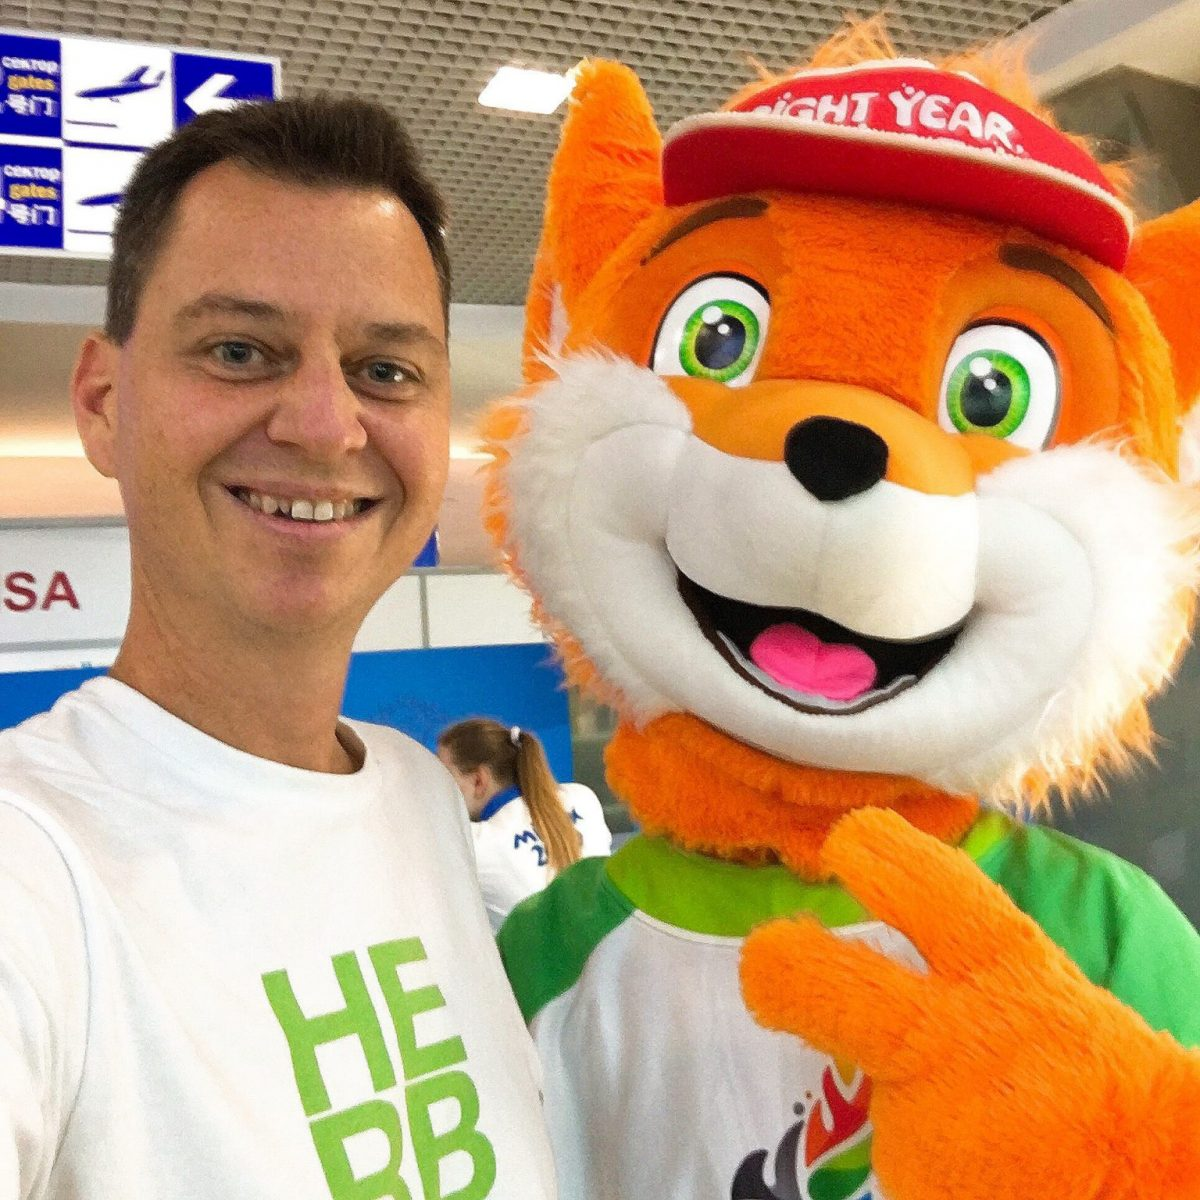 Nick and Lesik, mascot of the European Games in Minsk Belarus